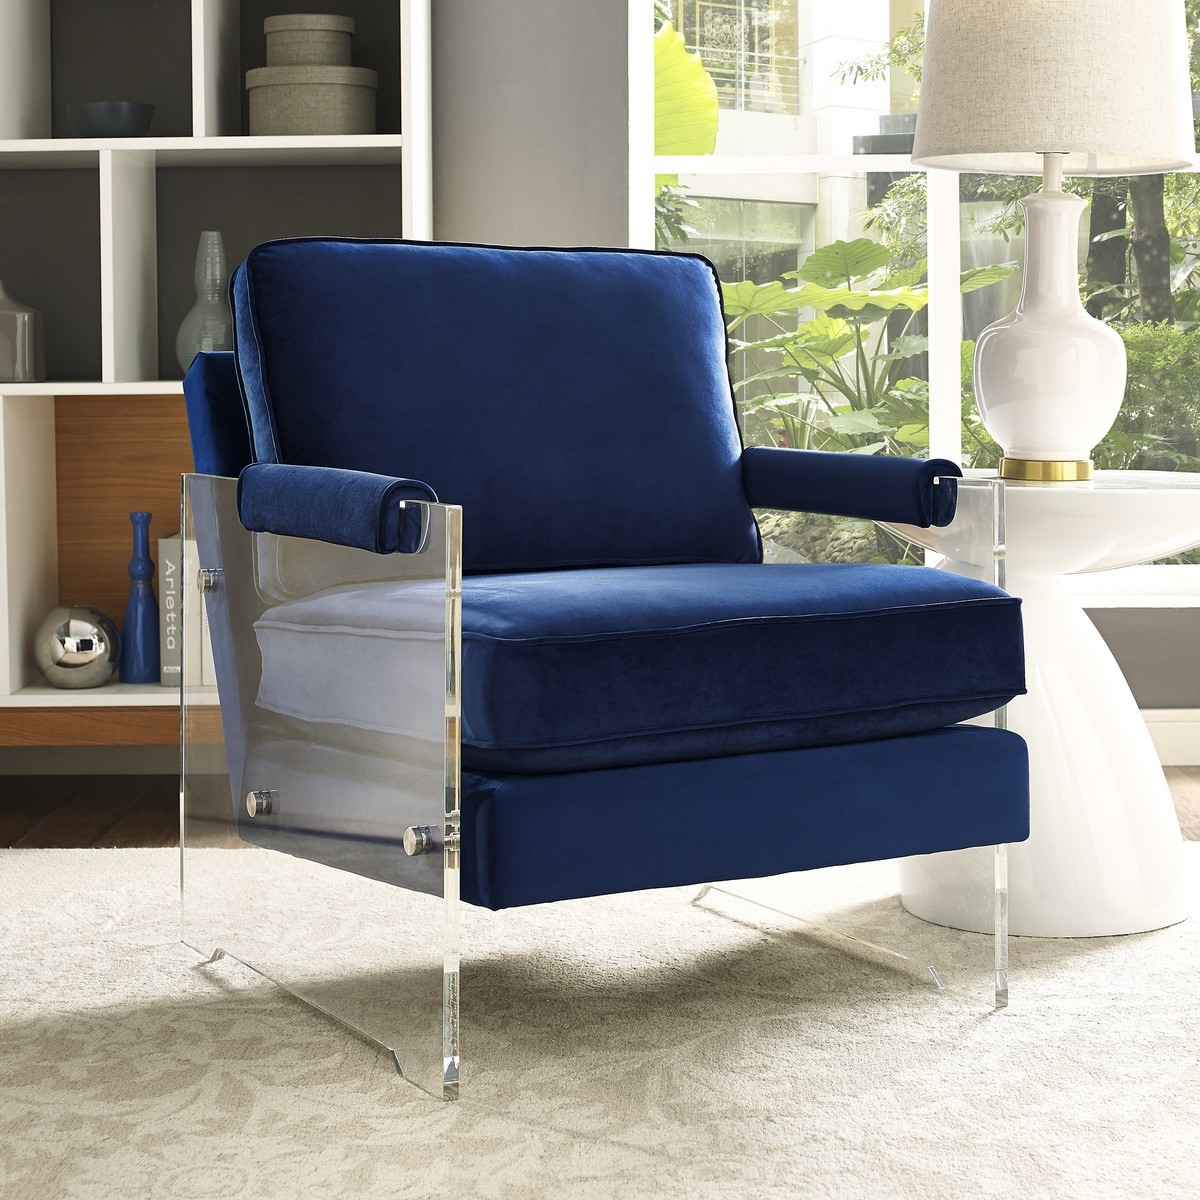 Tov Furniture Serena Navy Velvet Lucite Chair A94 At